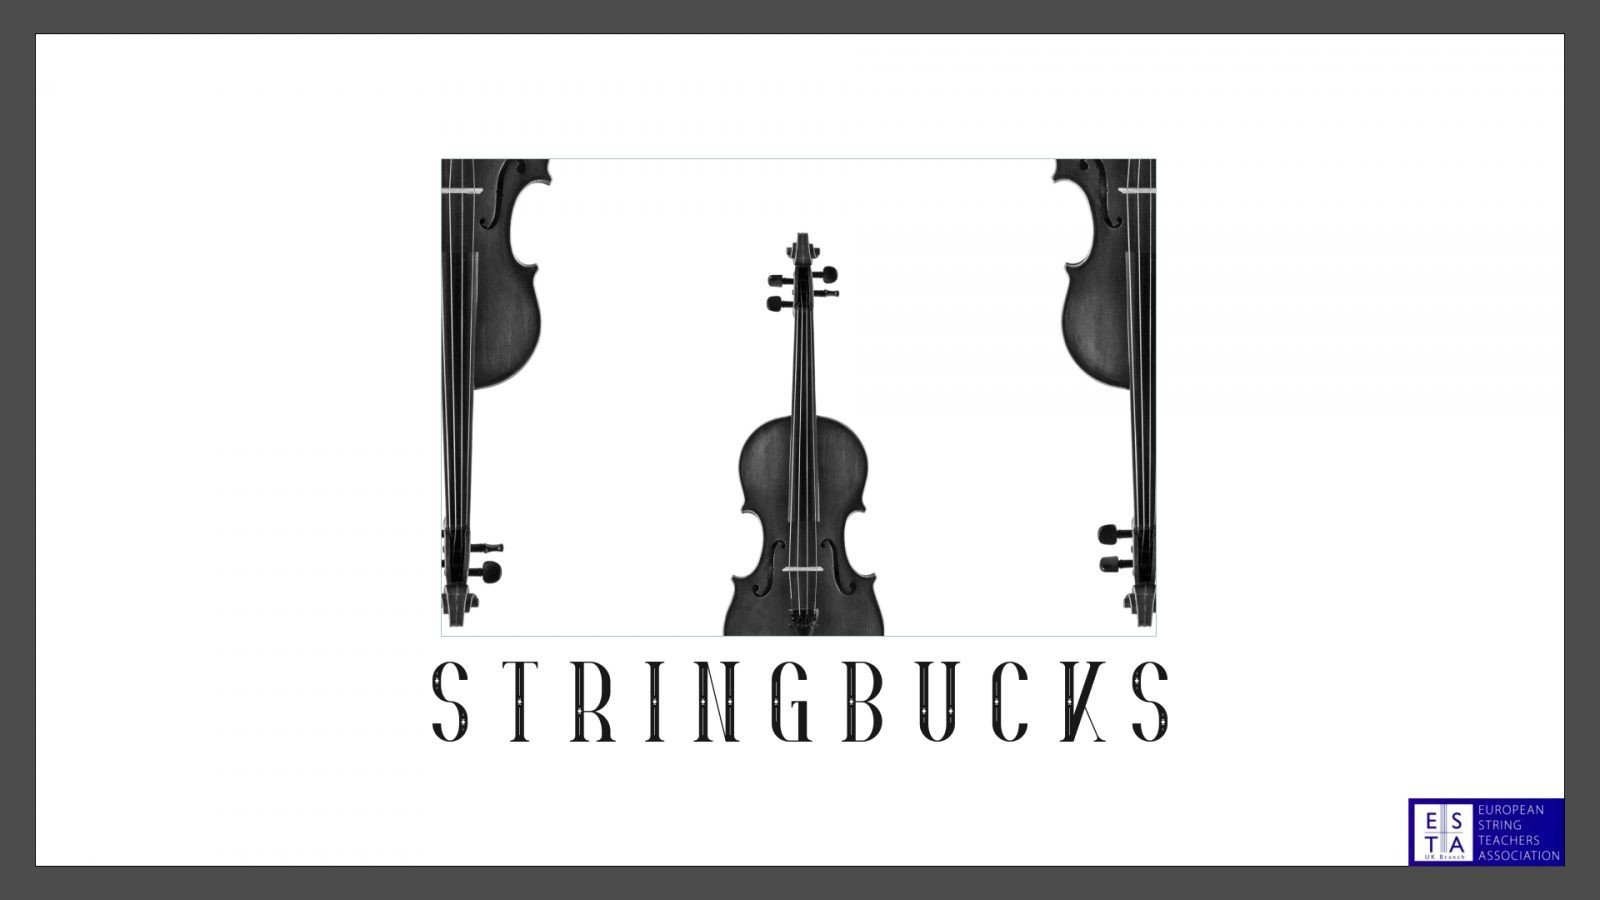 Stringbucks